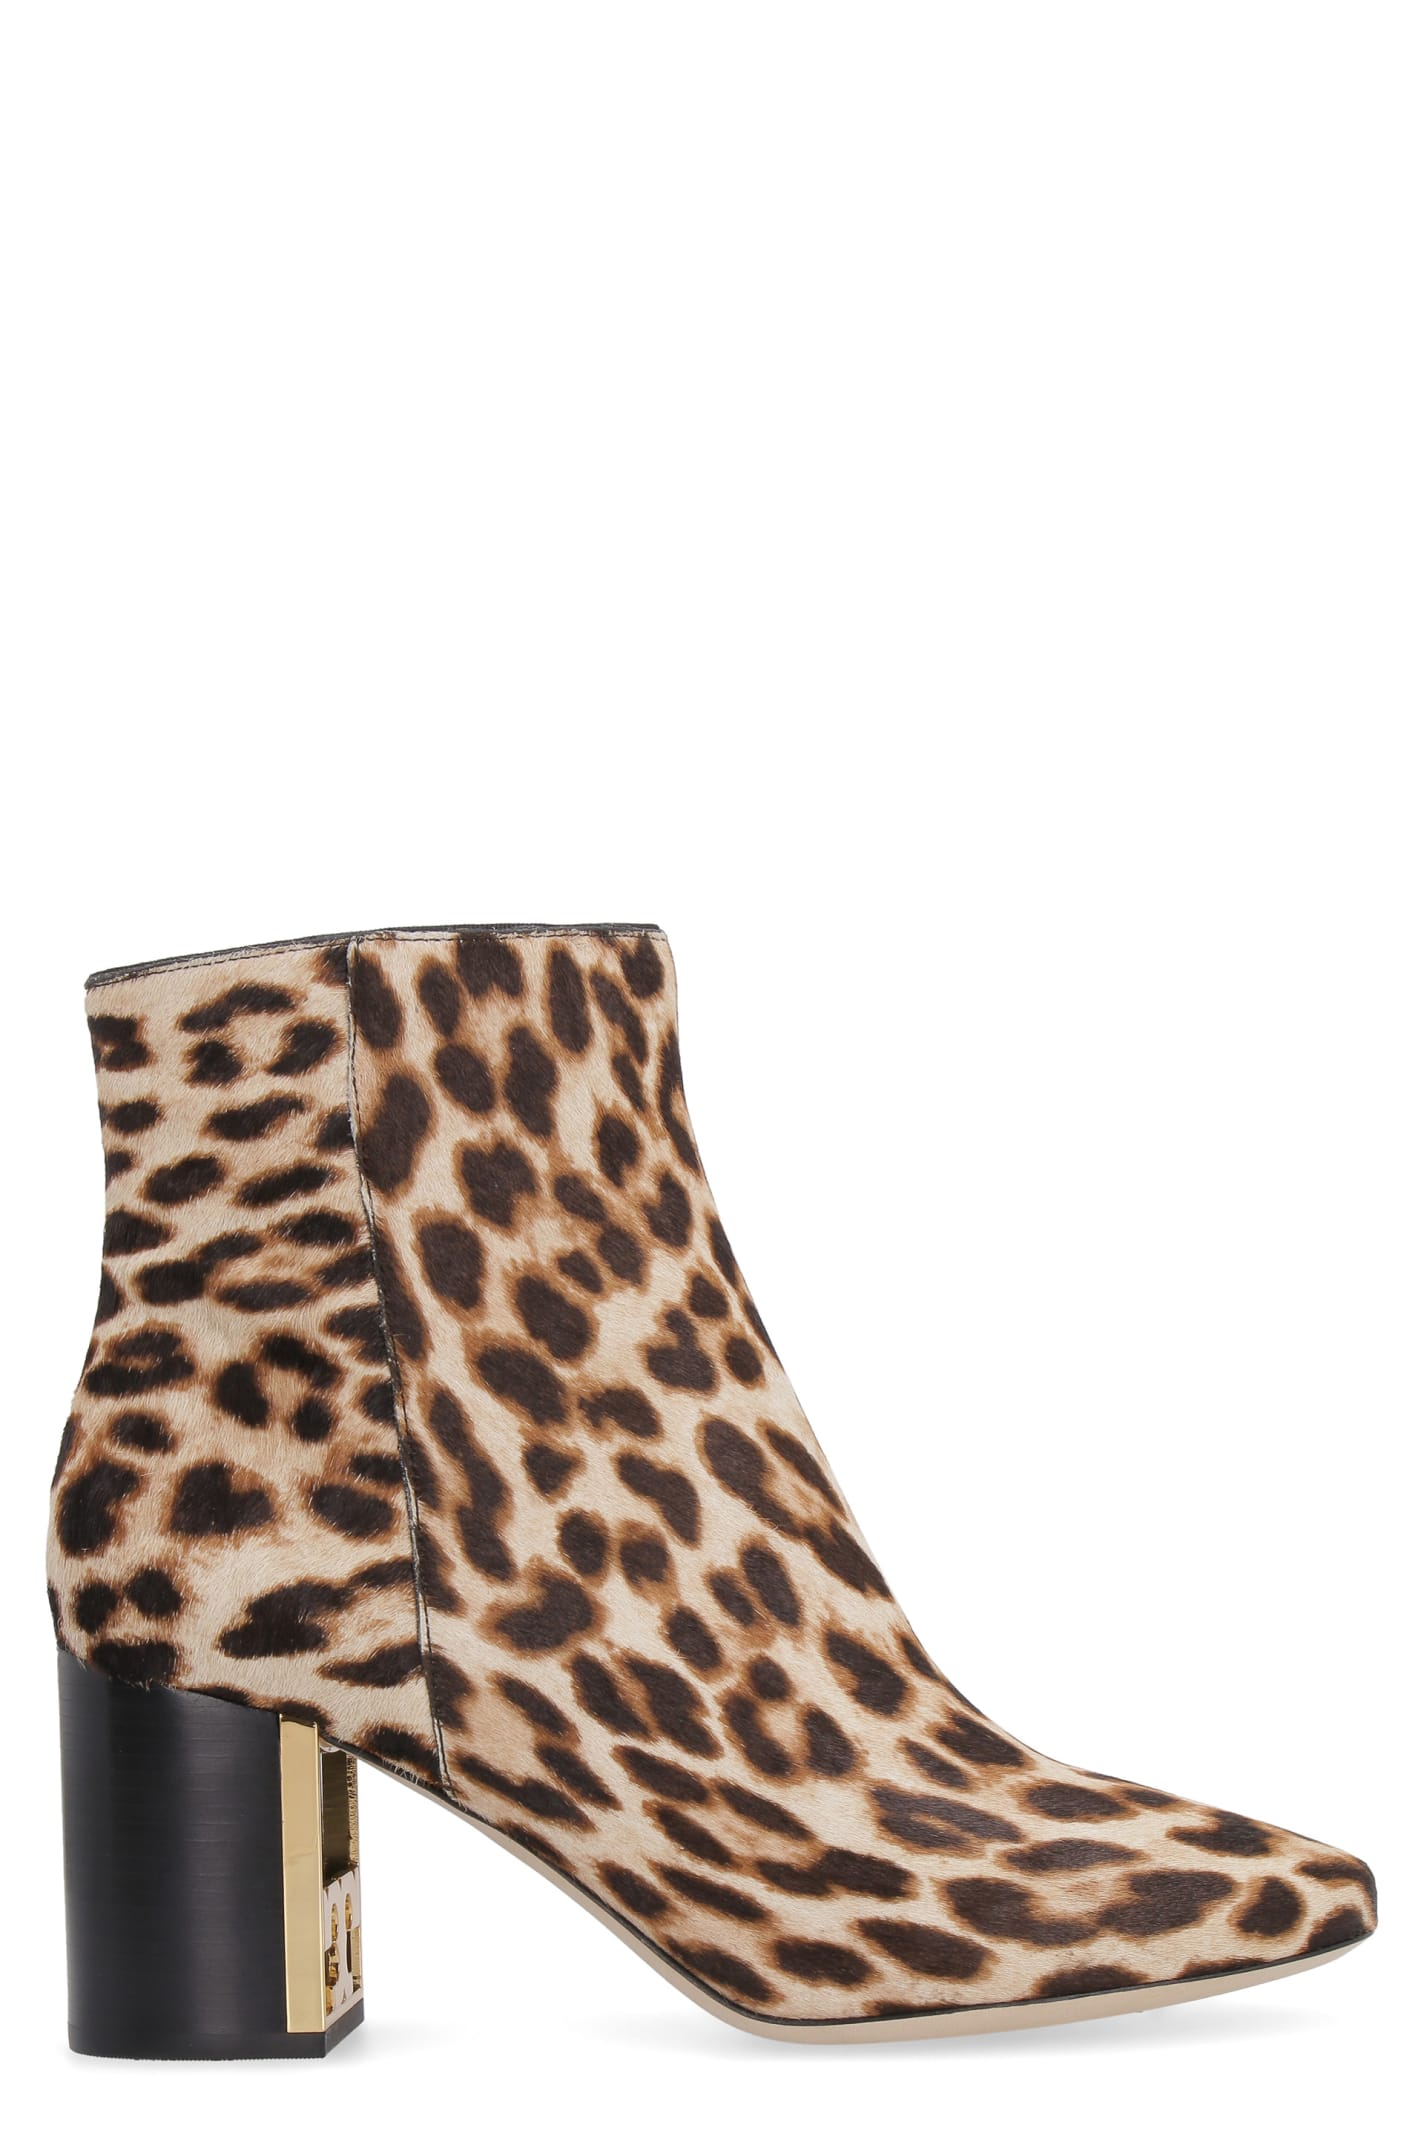 Tory Burch Gigi 70 Mm Leather Ankle Boots